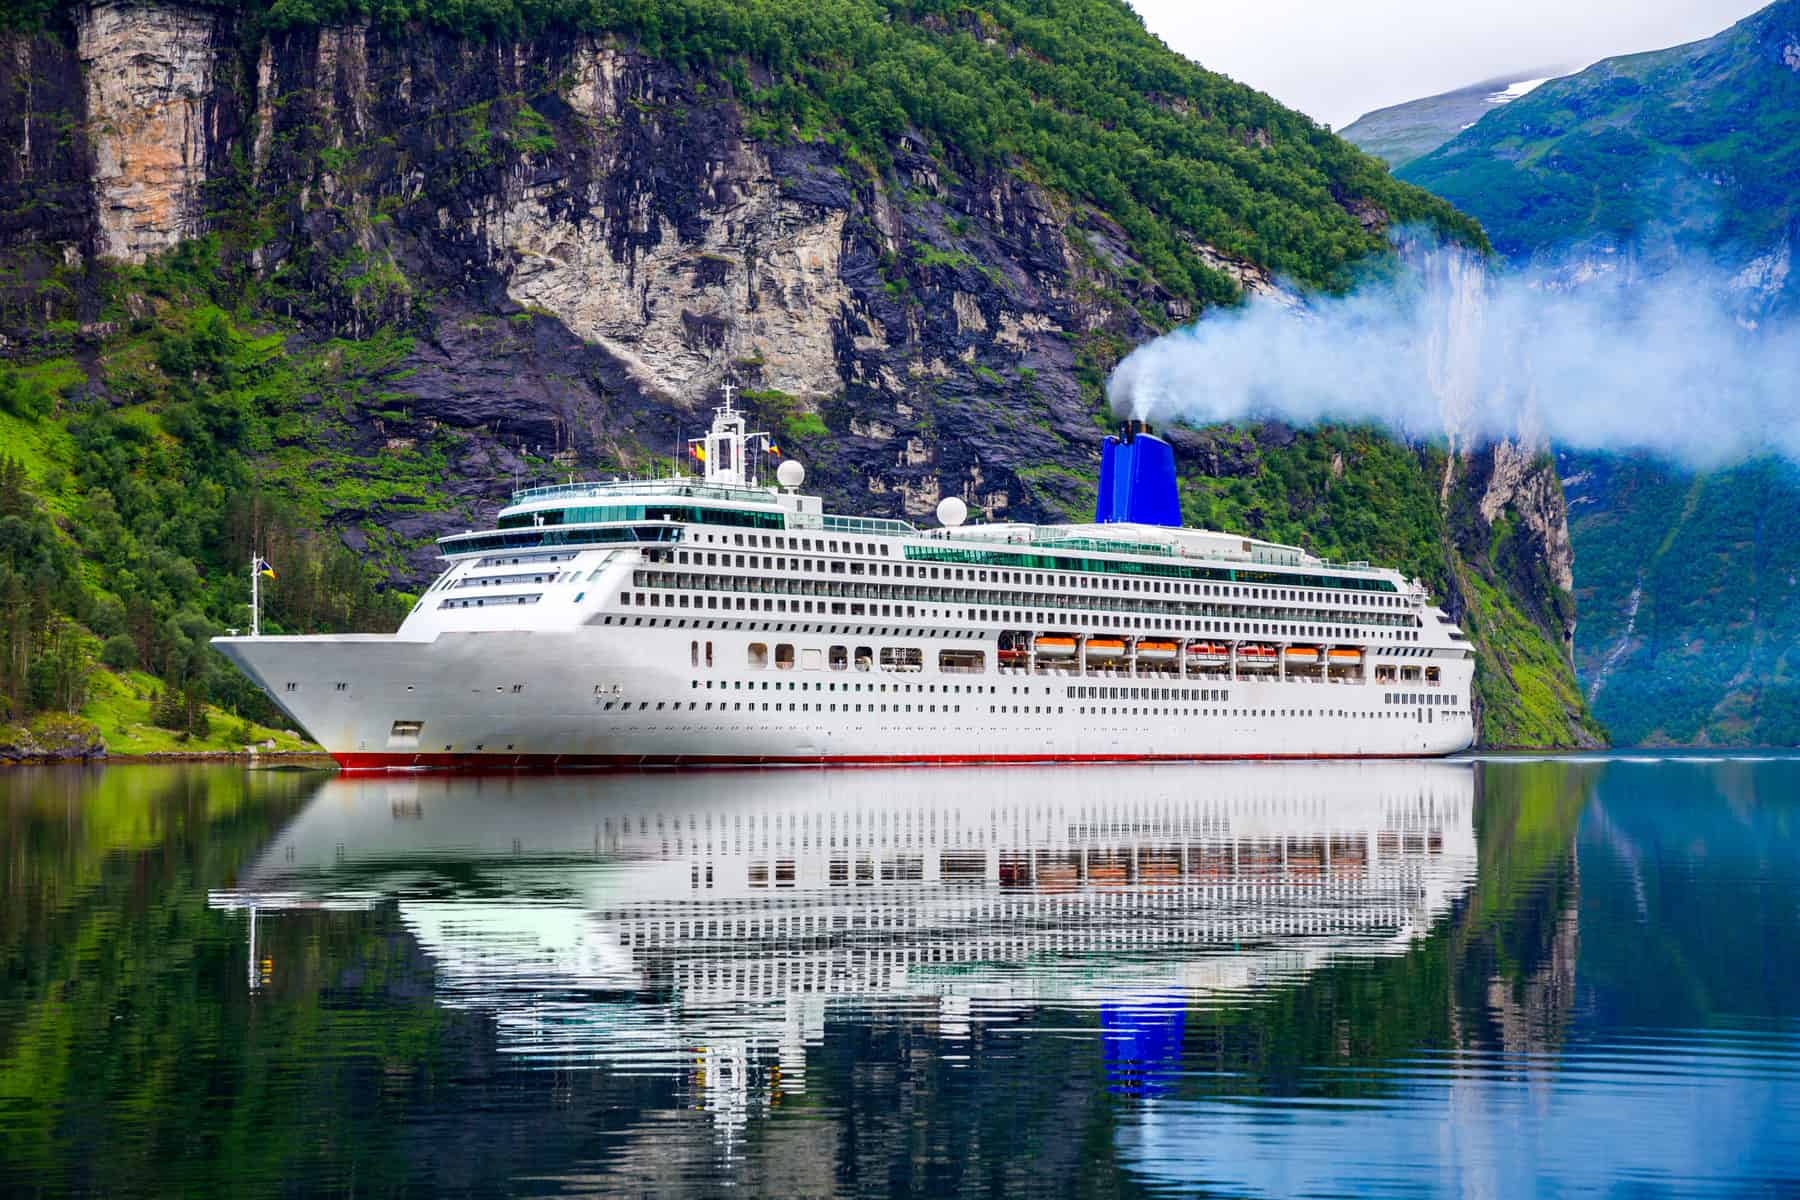 large cruise ship in sea with colourful cliff background